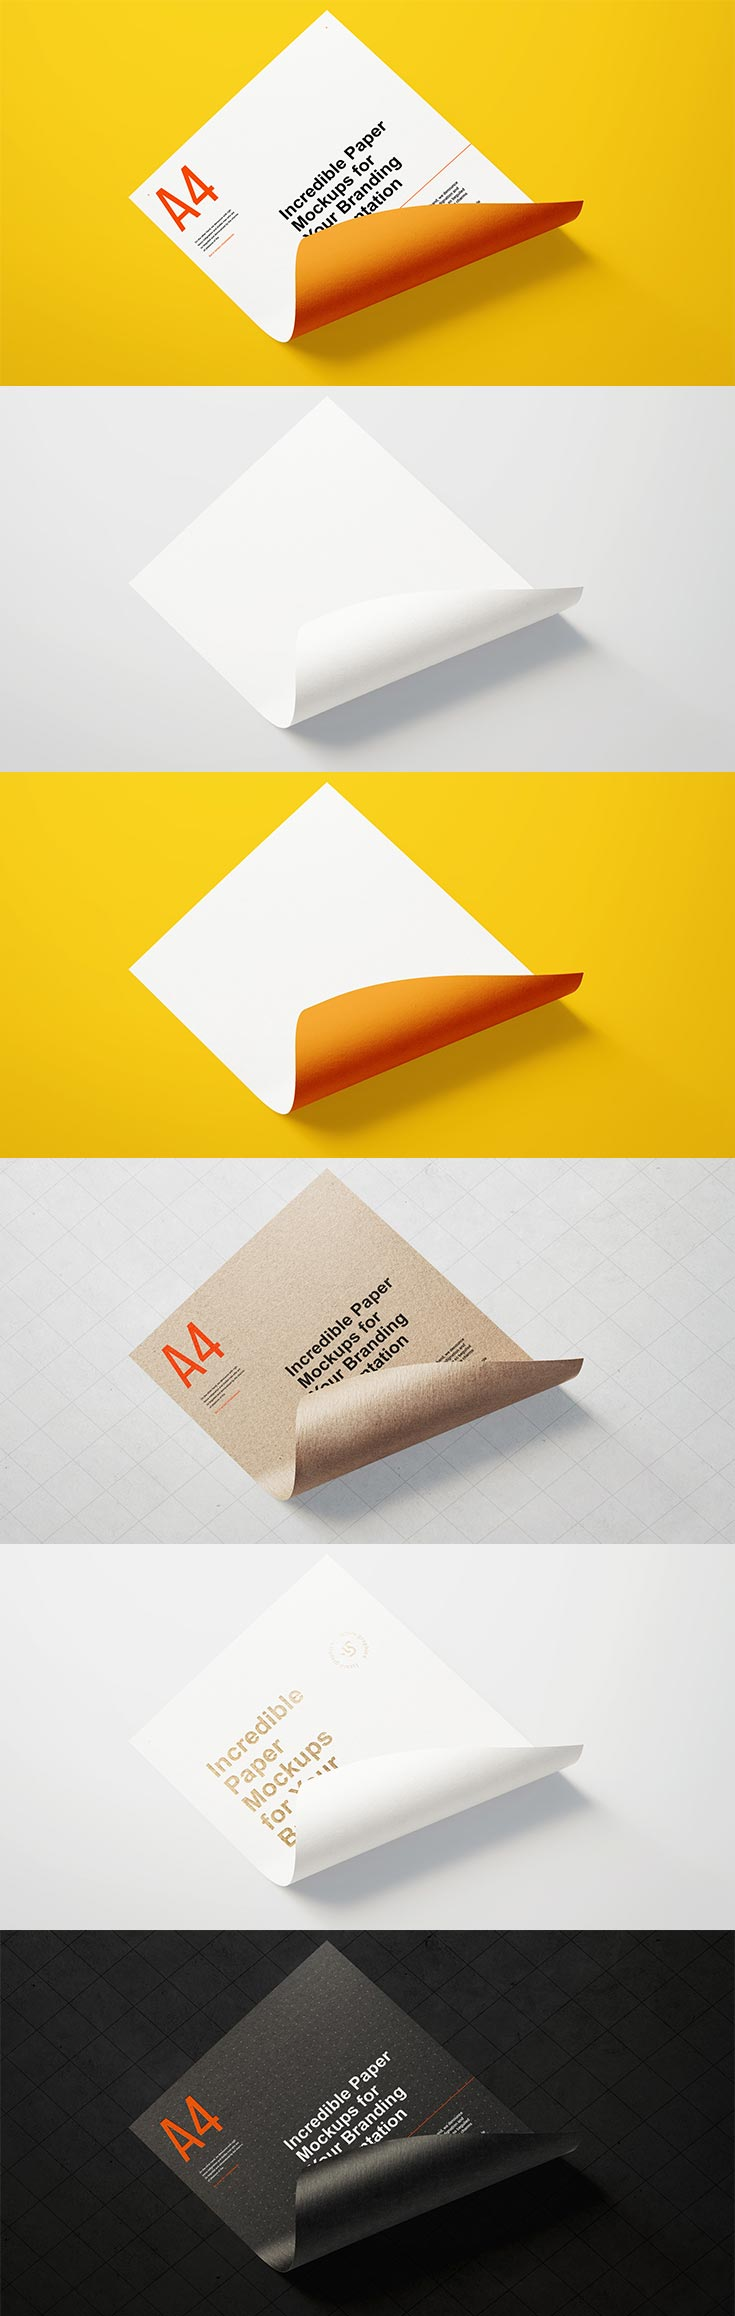 Free Paper Branding Mockup! A powerful tool for presenting your branding projects for Photoshop.